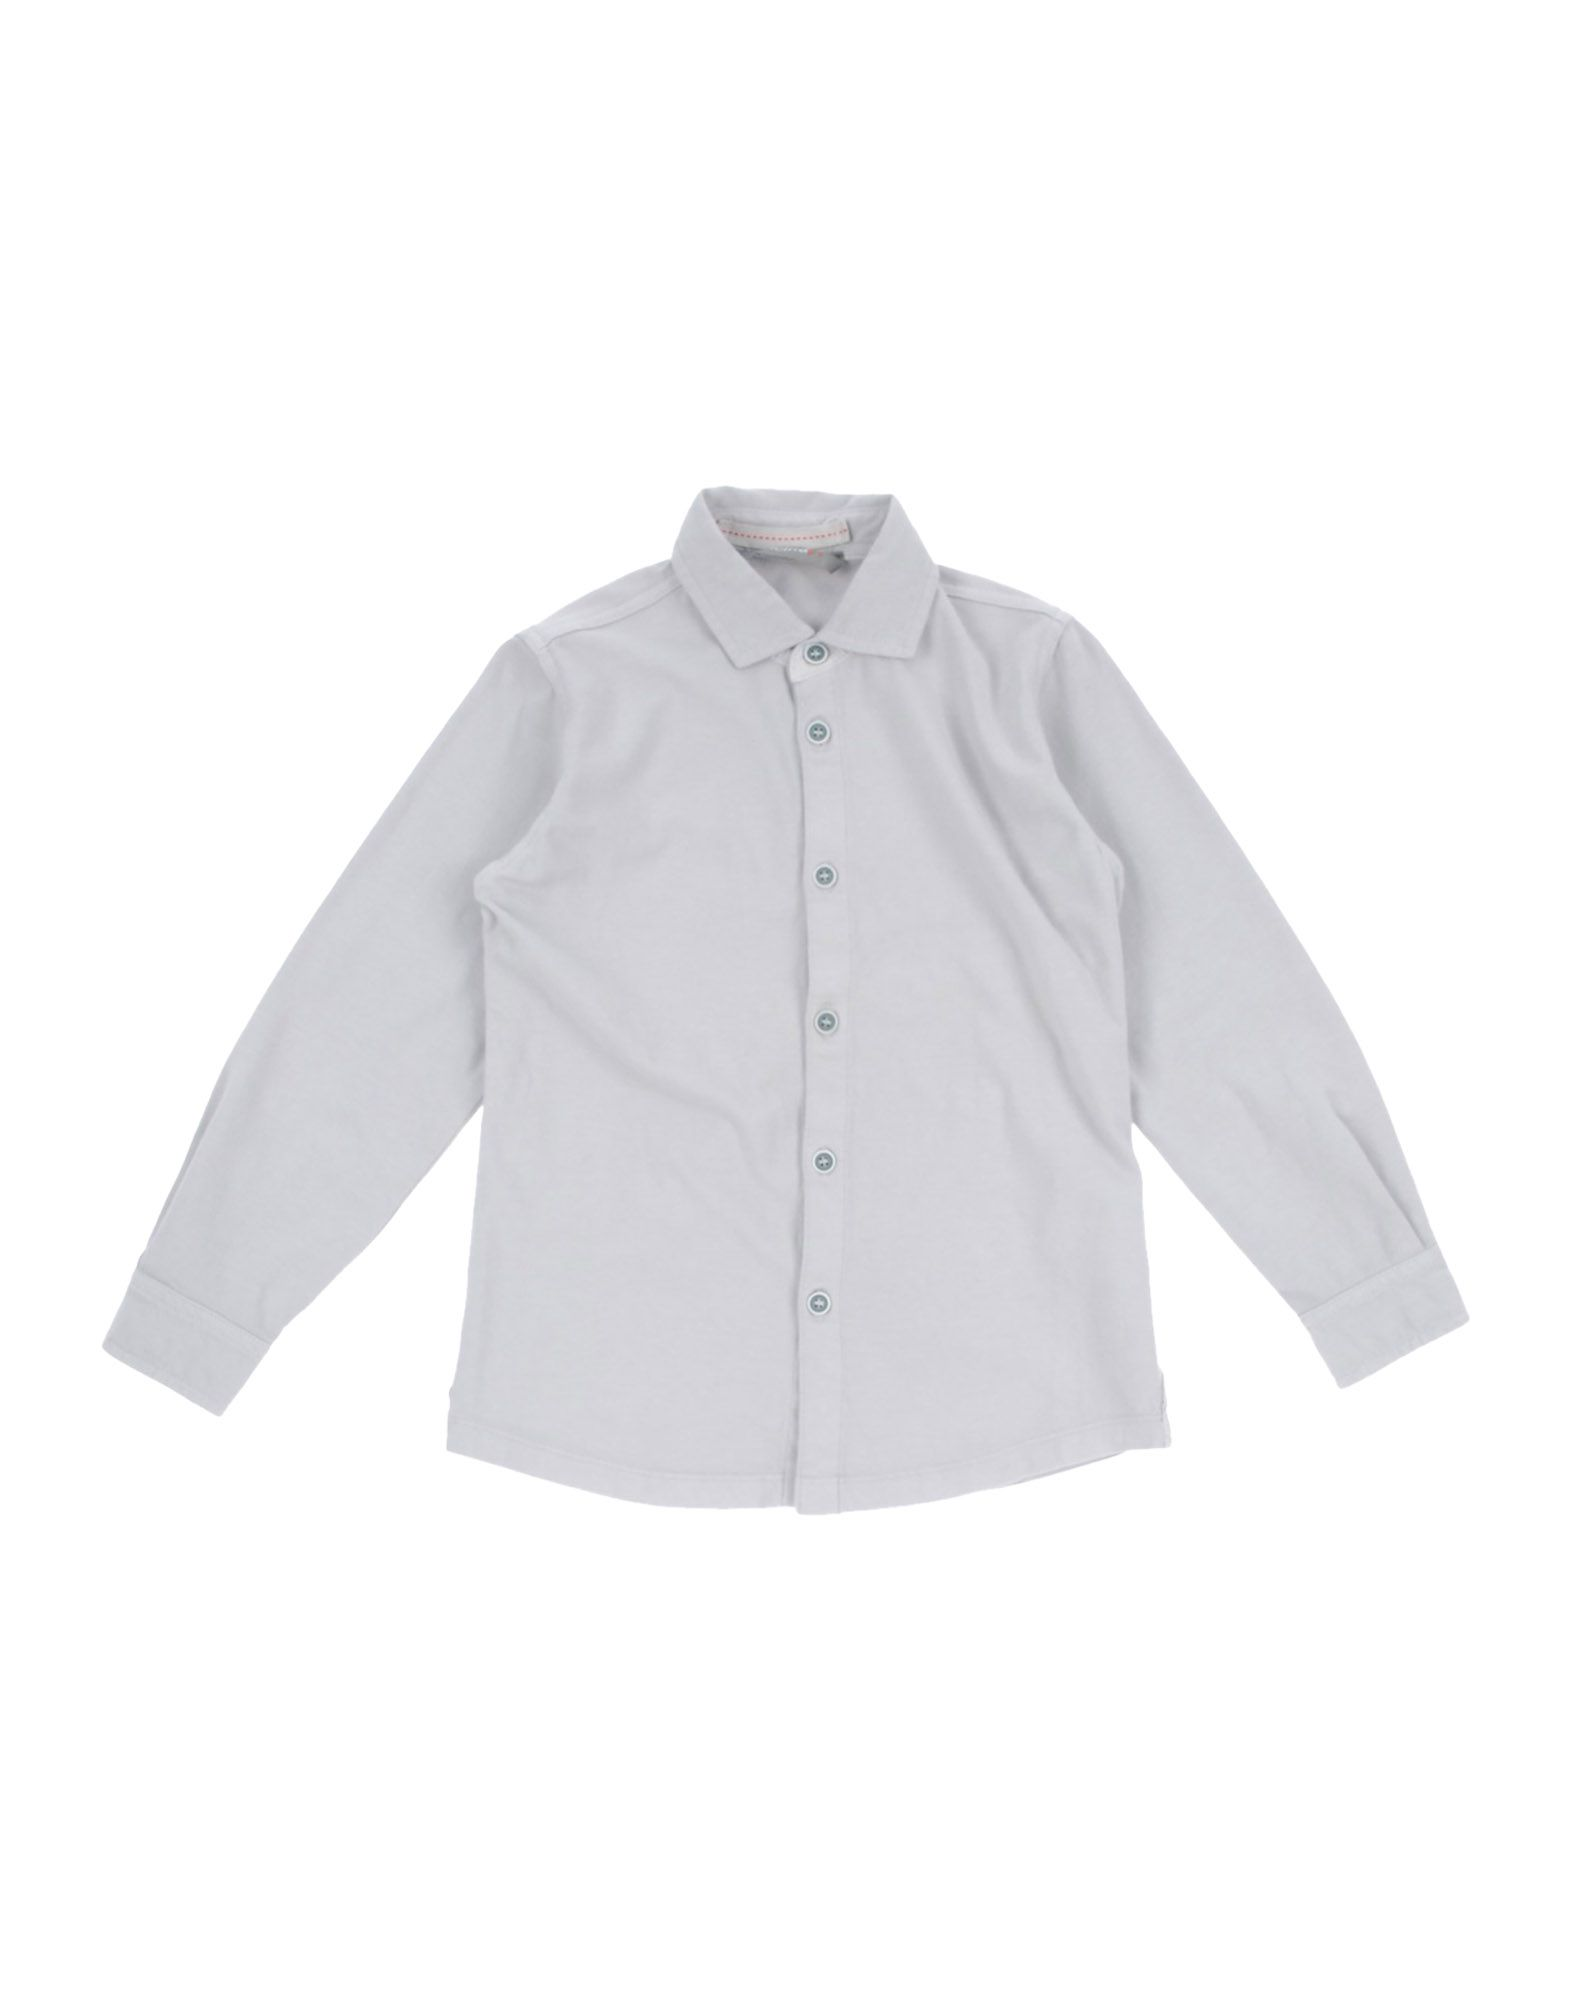 OFFICINA 51 Solid Color Shirt in Grey